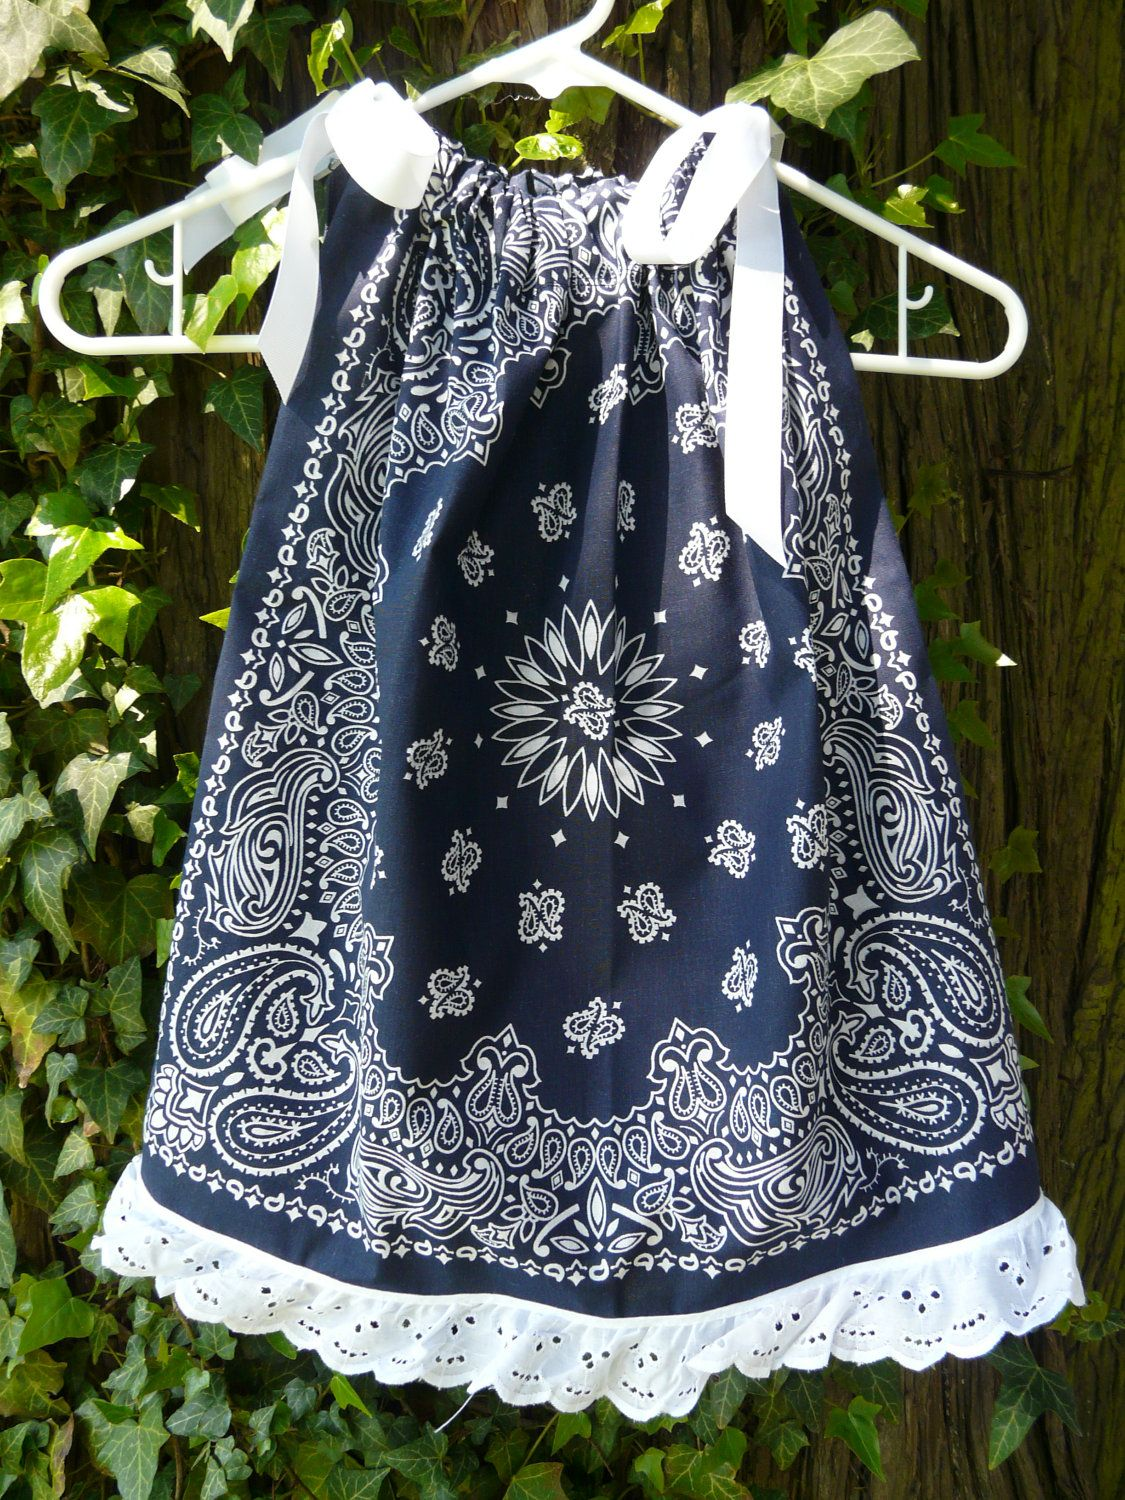 Bandana Pillowcase Dress/ Swing Top Toddler Girls w/ Eyelet lace ...